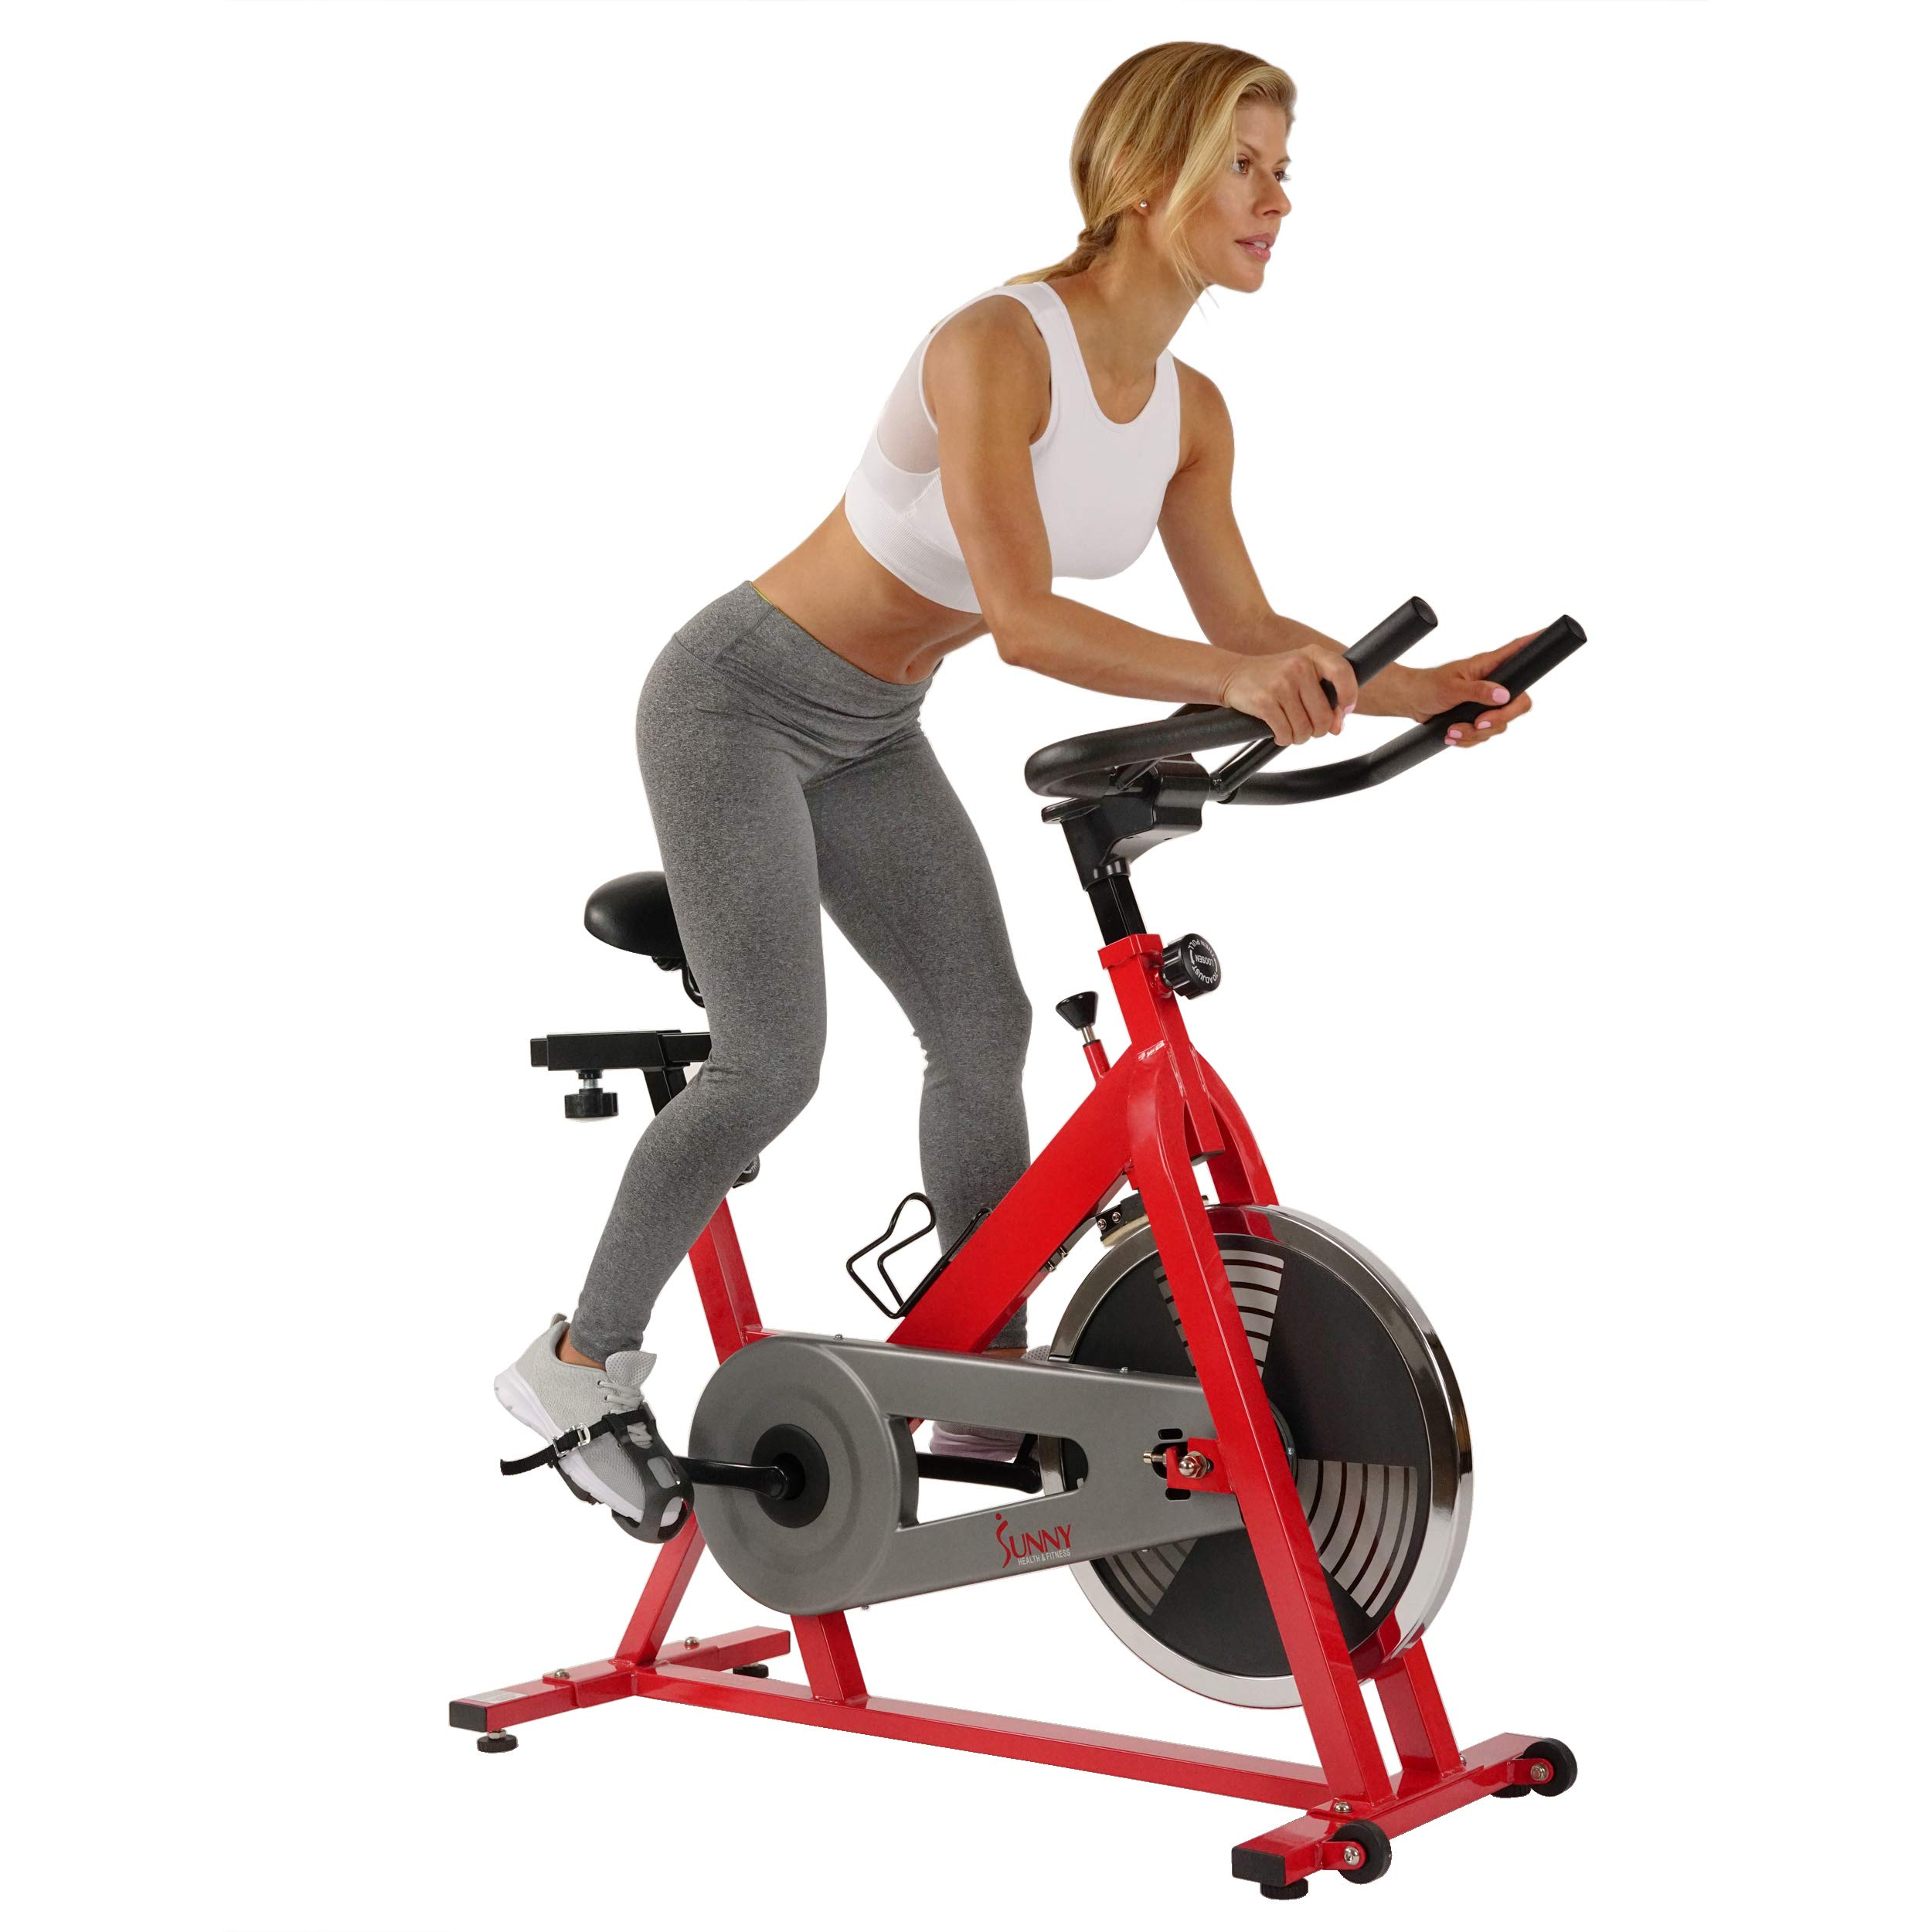 Sunny Health & Fitness SF-B1001 Indoor Cycling Bike, Red by Sunny Health & Fitness (Image #3)